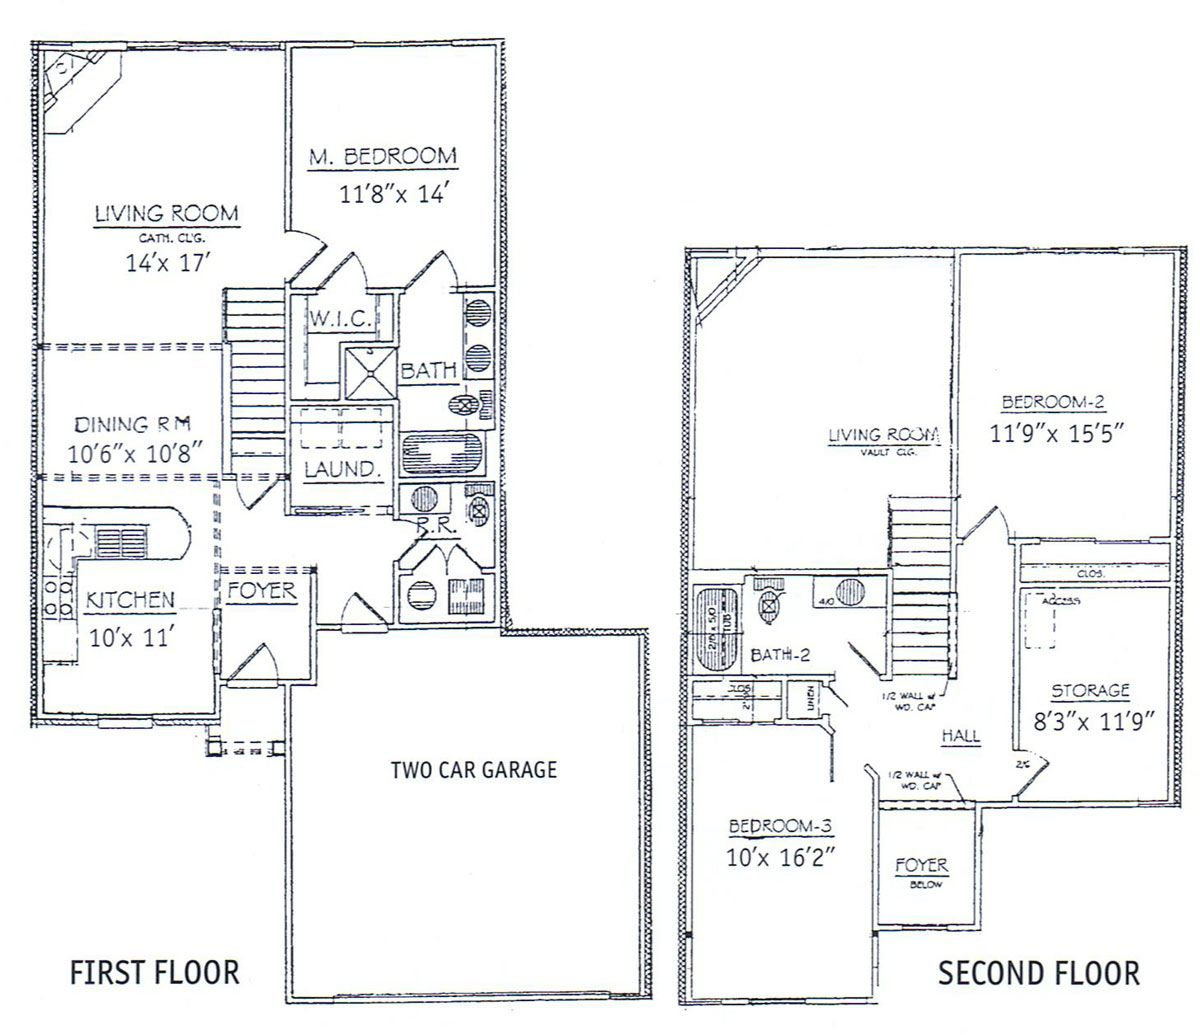 3 bedrooms floor plans 2 story bdrm basement the two three bedroom - 2 Storey House Plans